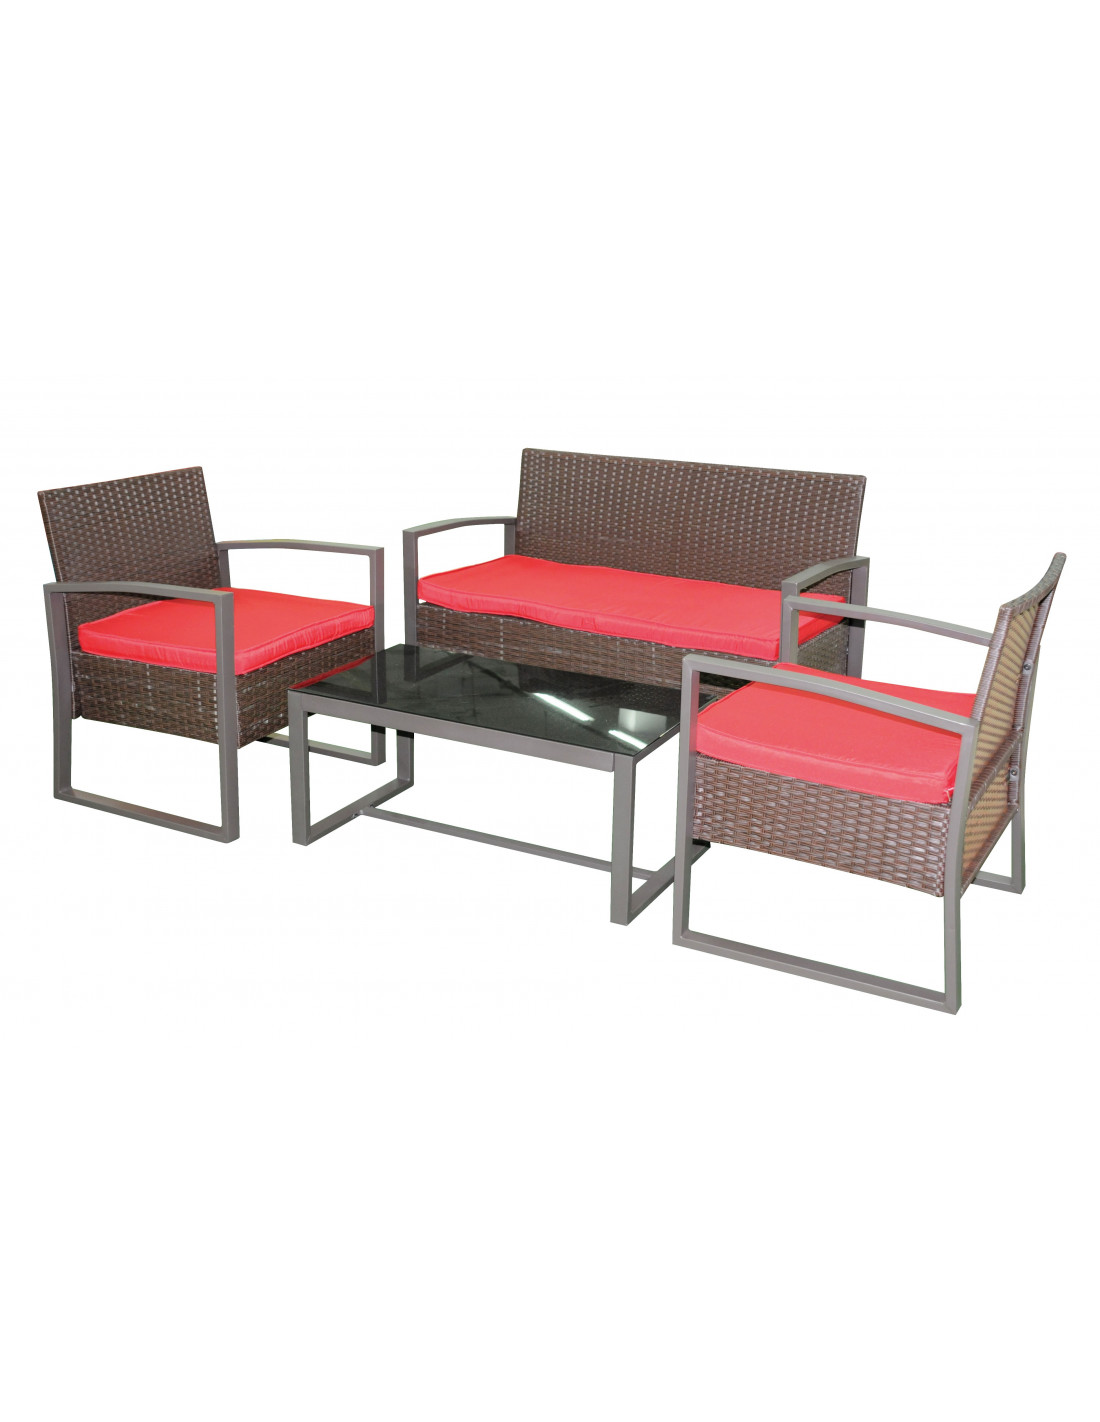 Ensemble salon lounger rouge hyper brico for Ensemble salon